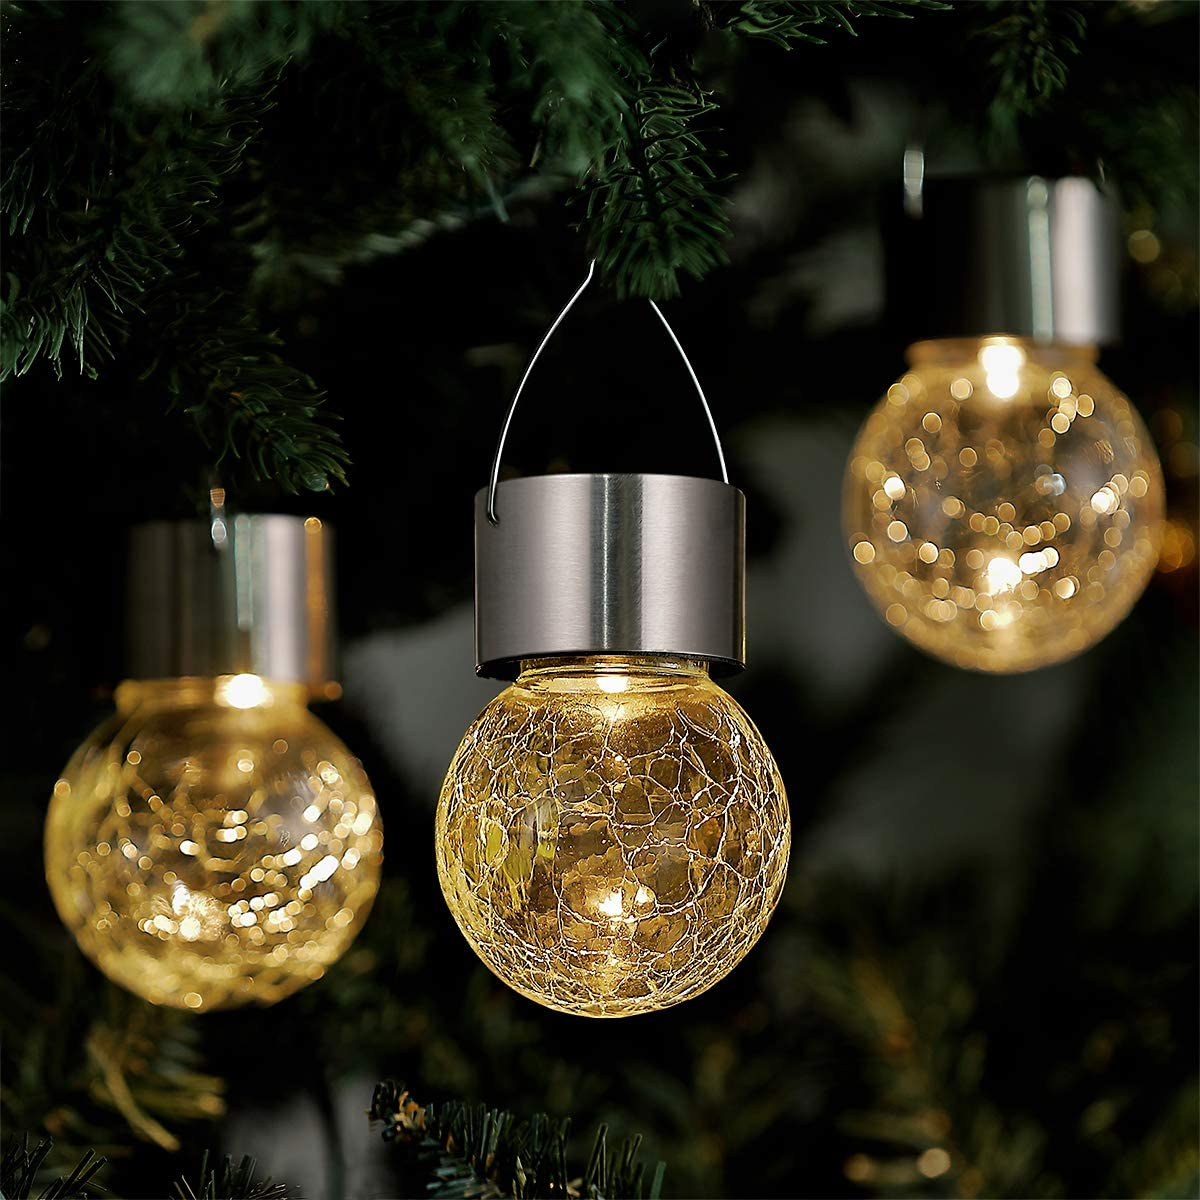 ELYXWORK Hanging Solar Lights Outdoor Garden Decorative, Solar Crackle Globe Hanging Ball Lights Warm White LED Waterproof Outside Solar Lanterns for Yard, Patio, Tree or Holiday Decoration 4 Pack